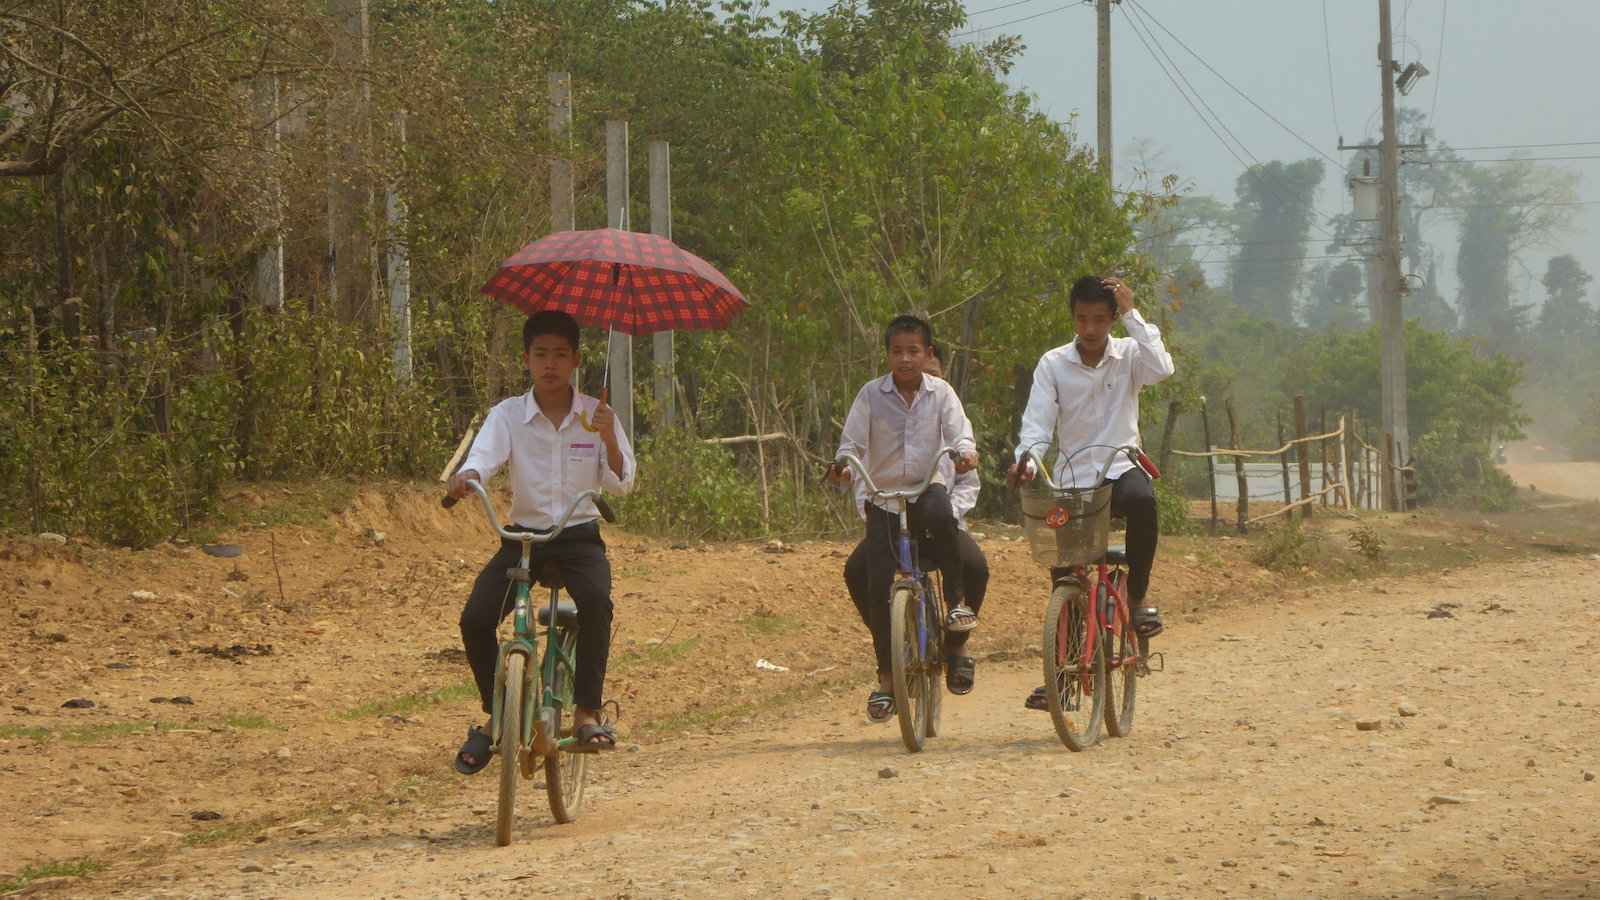 People of Laos are, on average, the second shortest in the world!